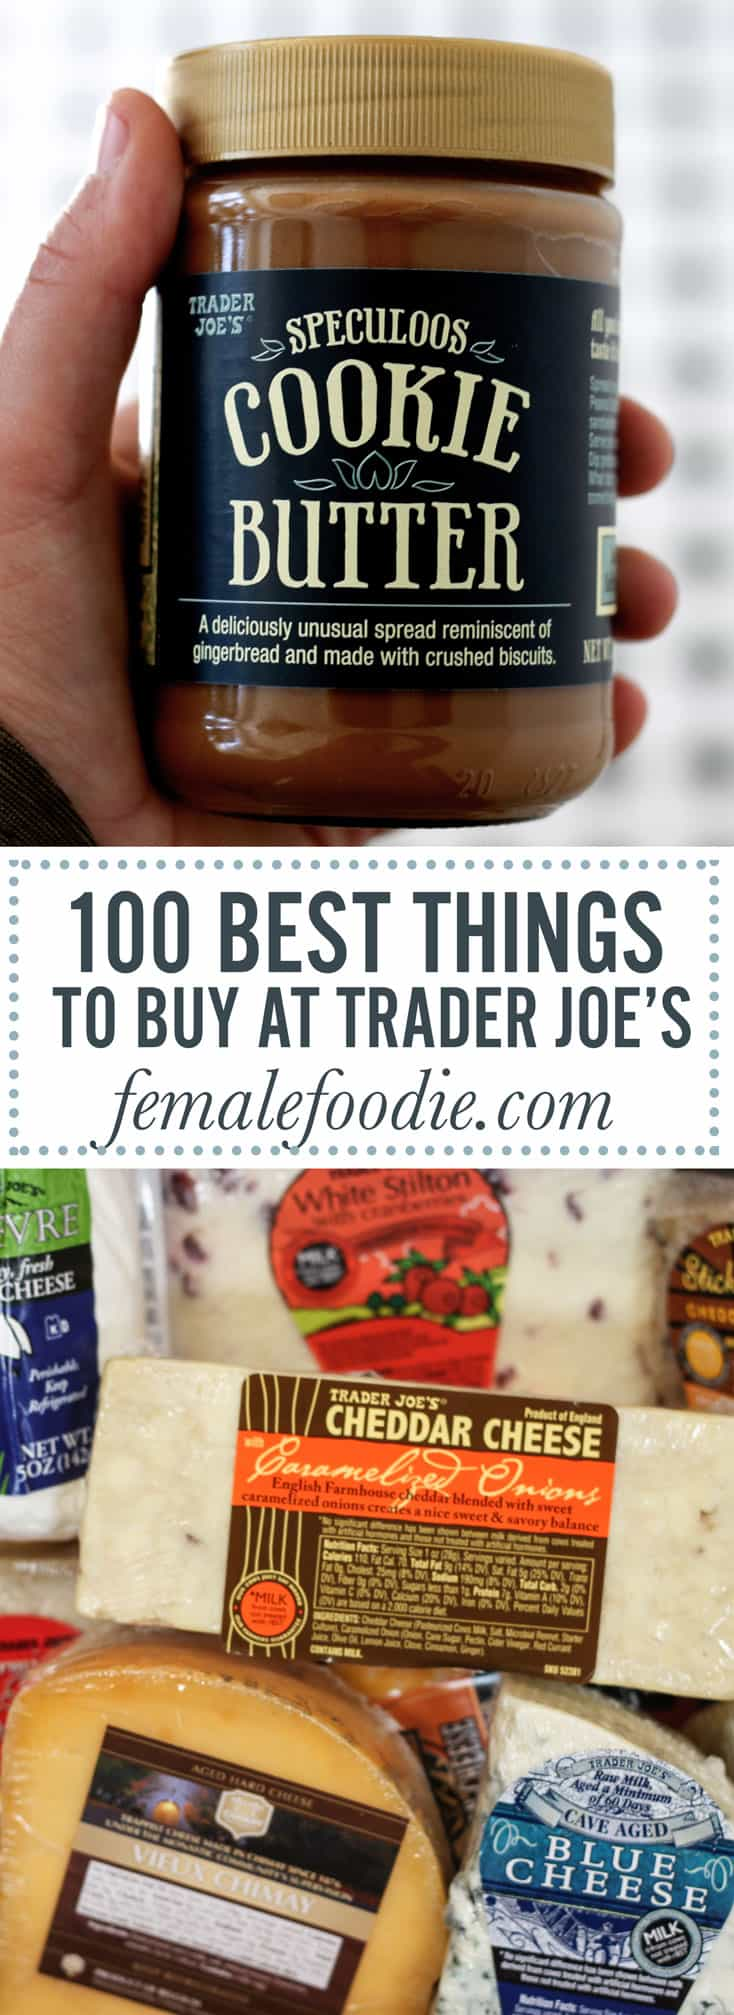 100 BEST THINGS TO BUY AT TRADER JOES! A full post top to bottom of our favorite things to throw in that grocery cart while you're perusing the isles at our favorite neighborhood grocery store. Full post at femalefoodie.com!